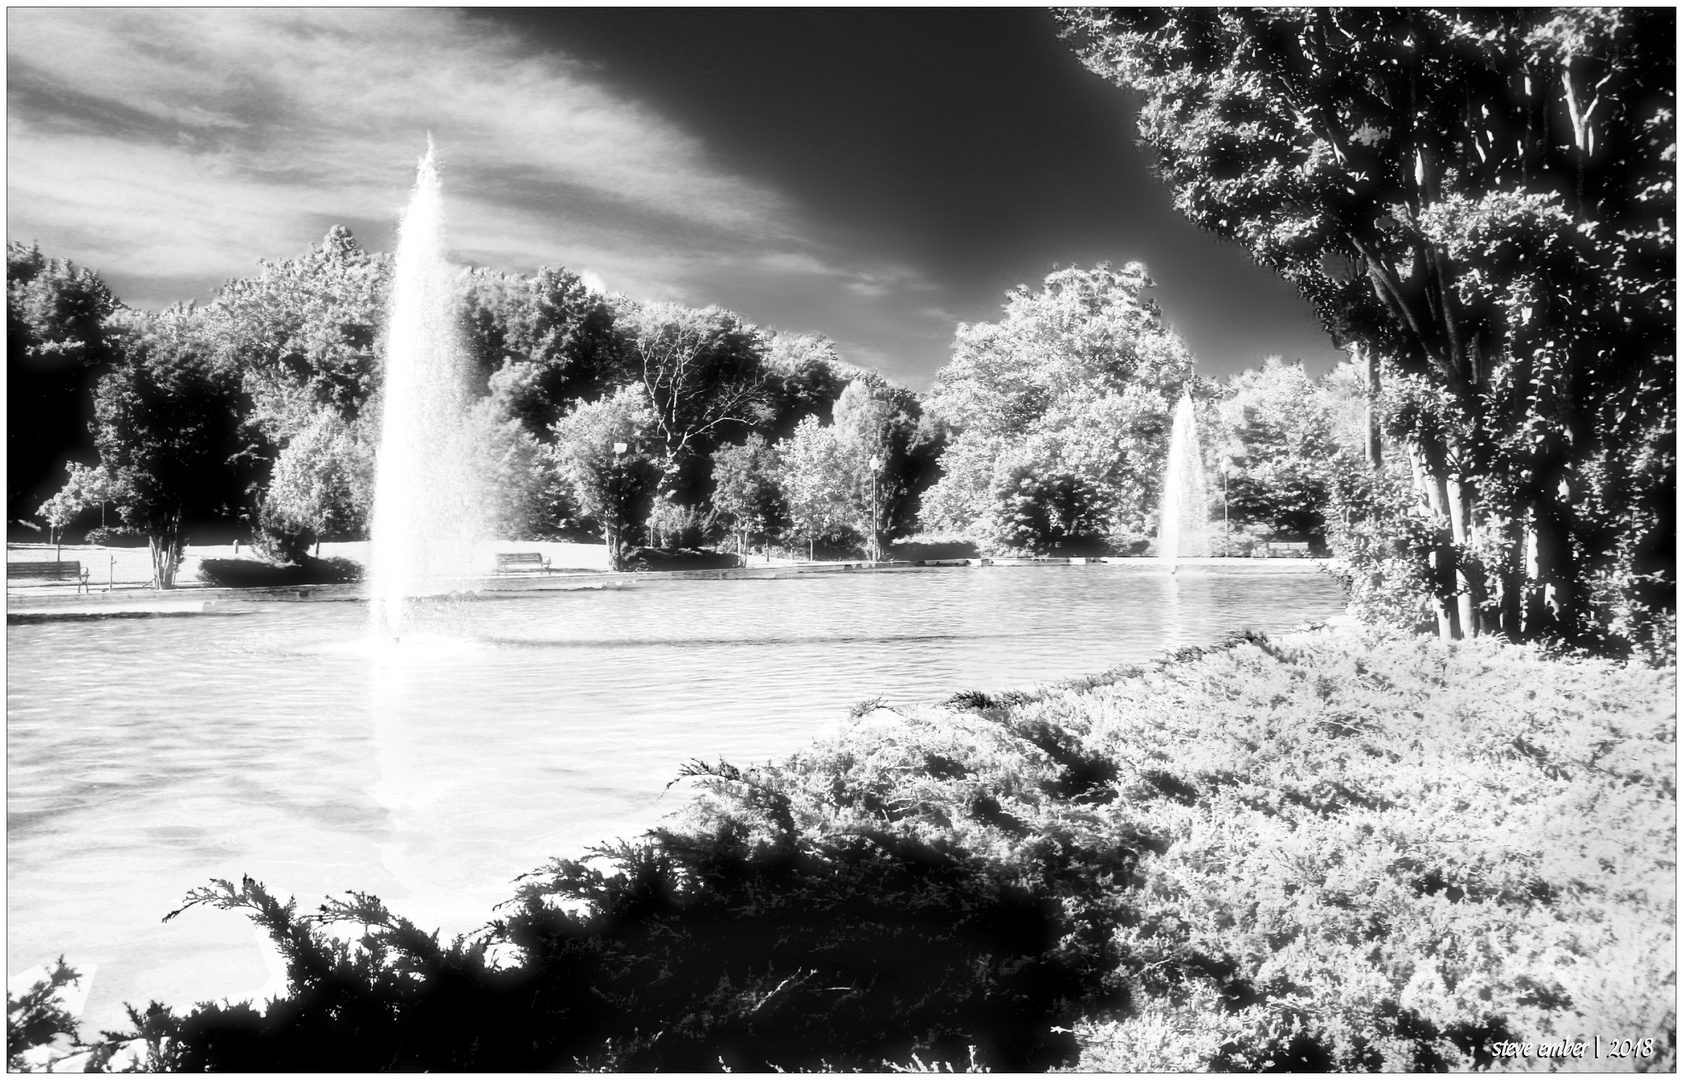 Quiet Waters Summer Impression No.3 - 'The Fountain Pool'